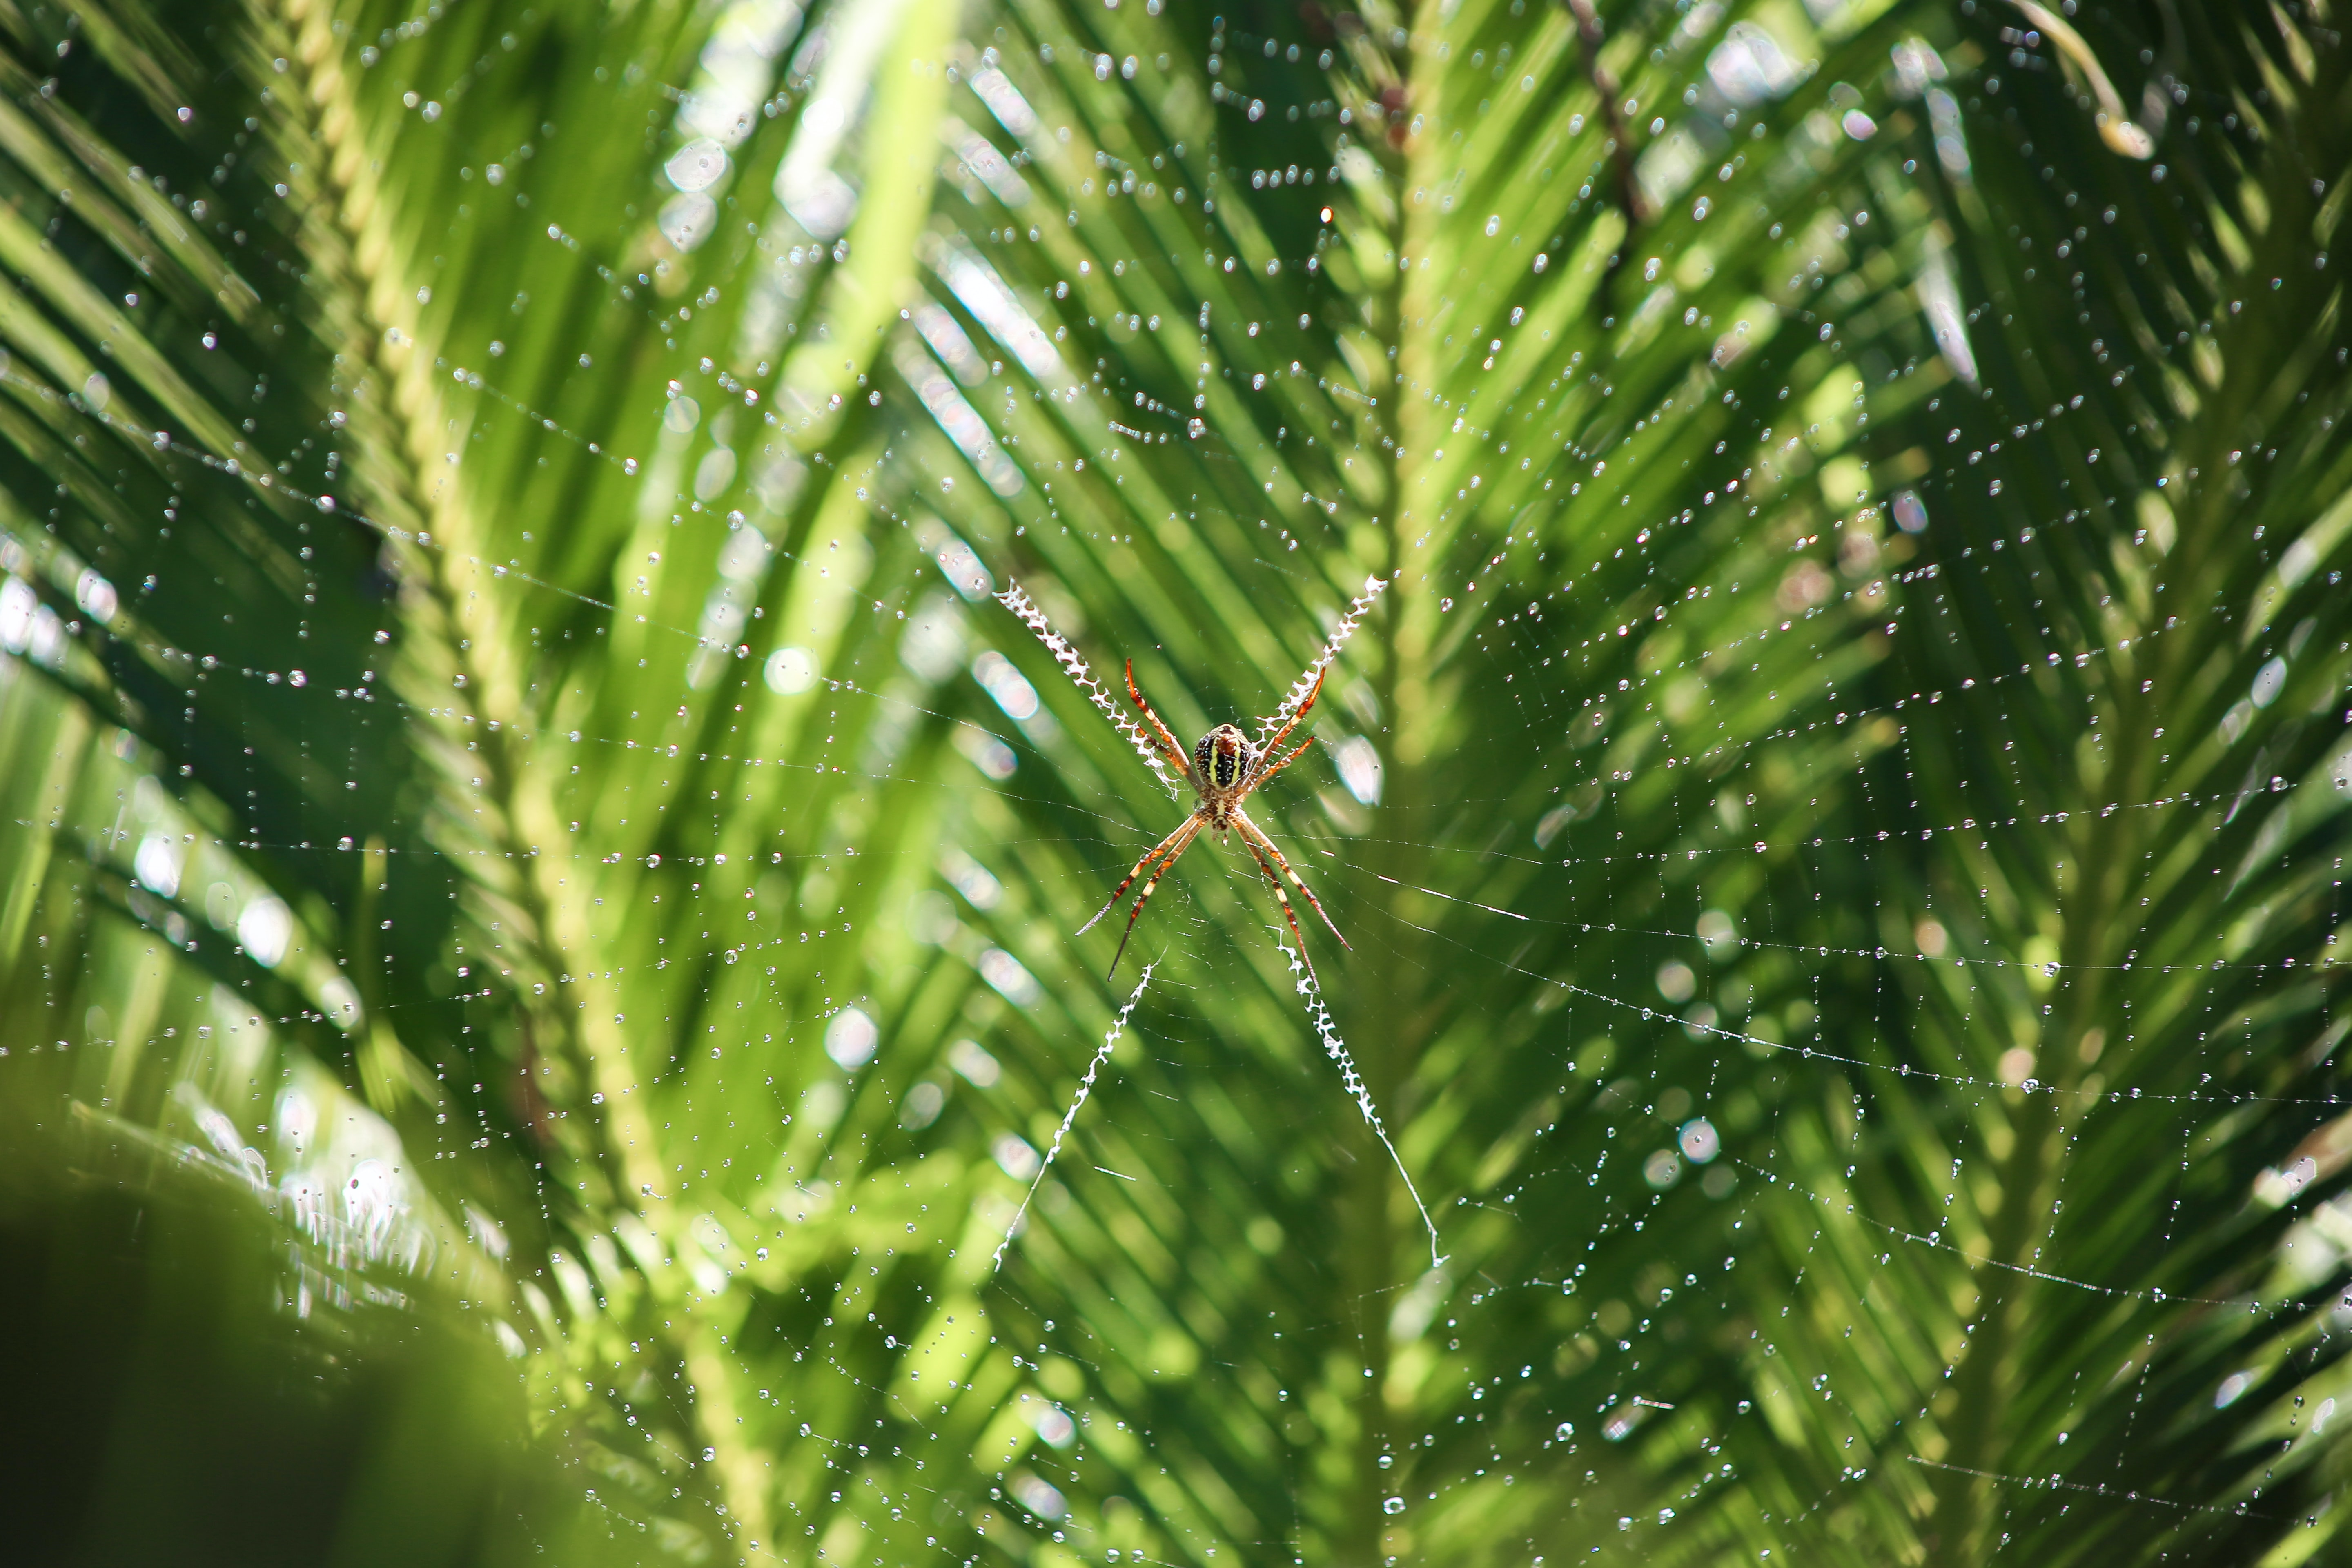 A spider sitting in the middle of a spiderweb against a green background